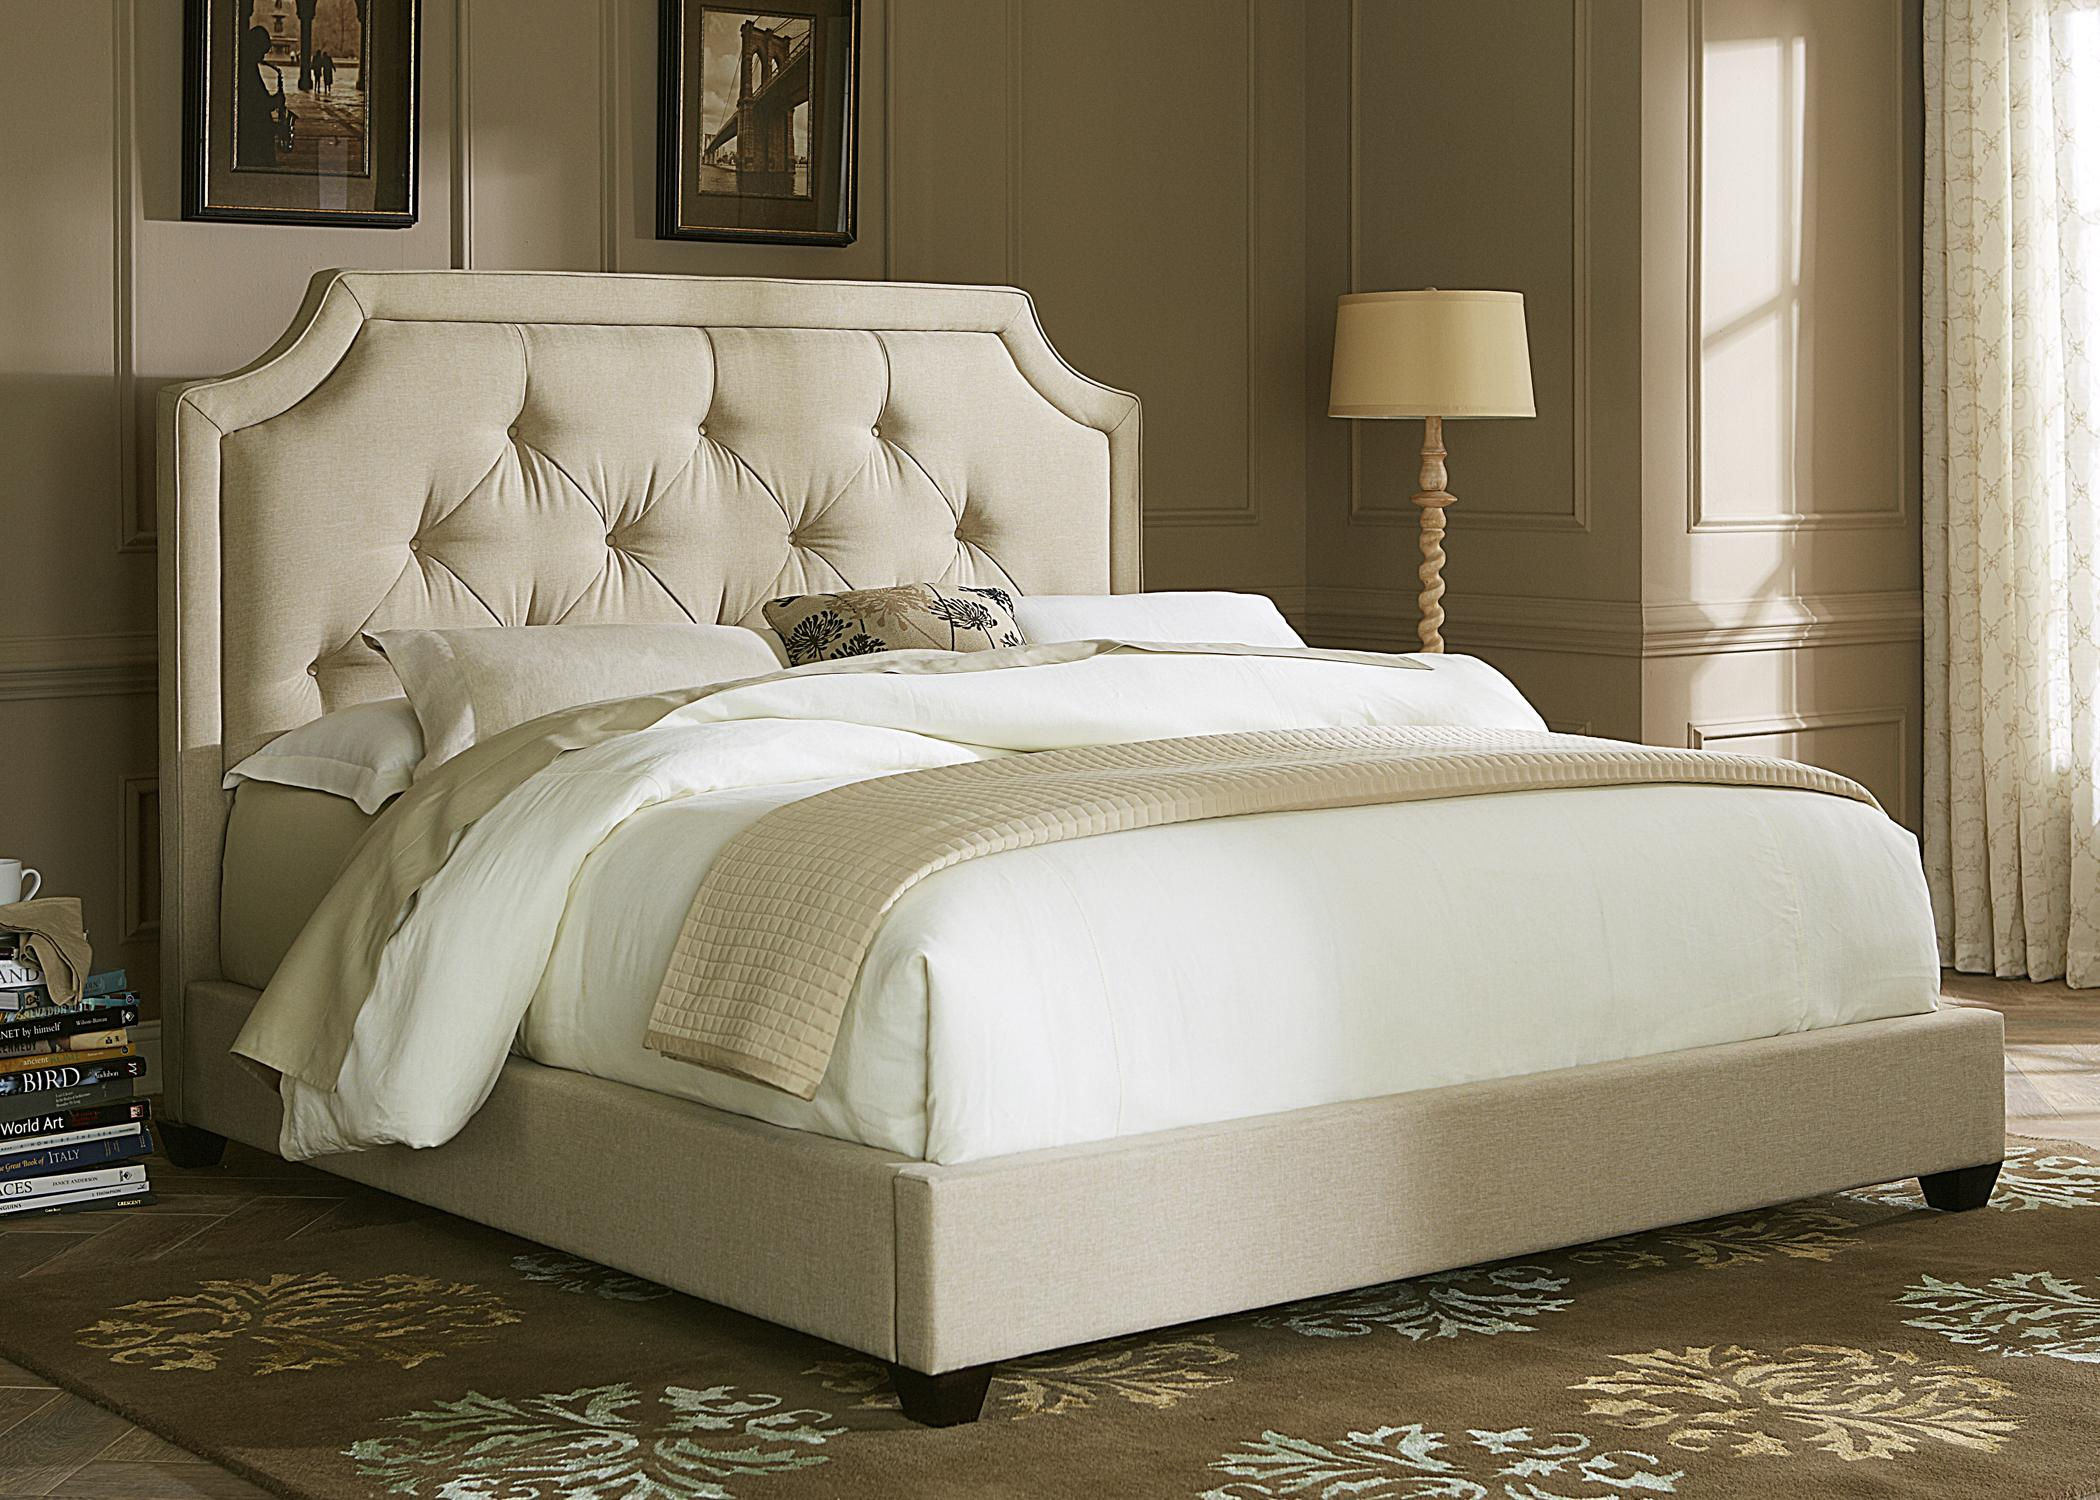 Superior Queen Upholstered Sloped Panel Bed